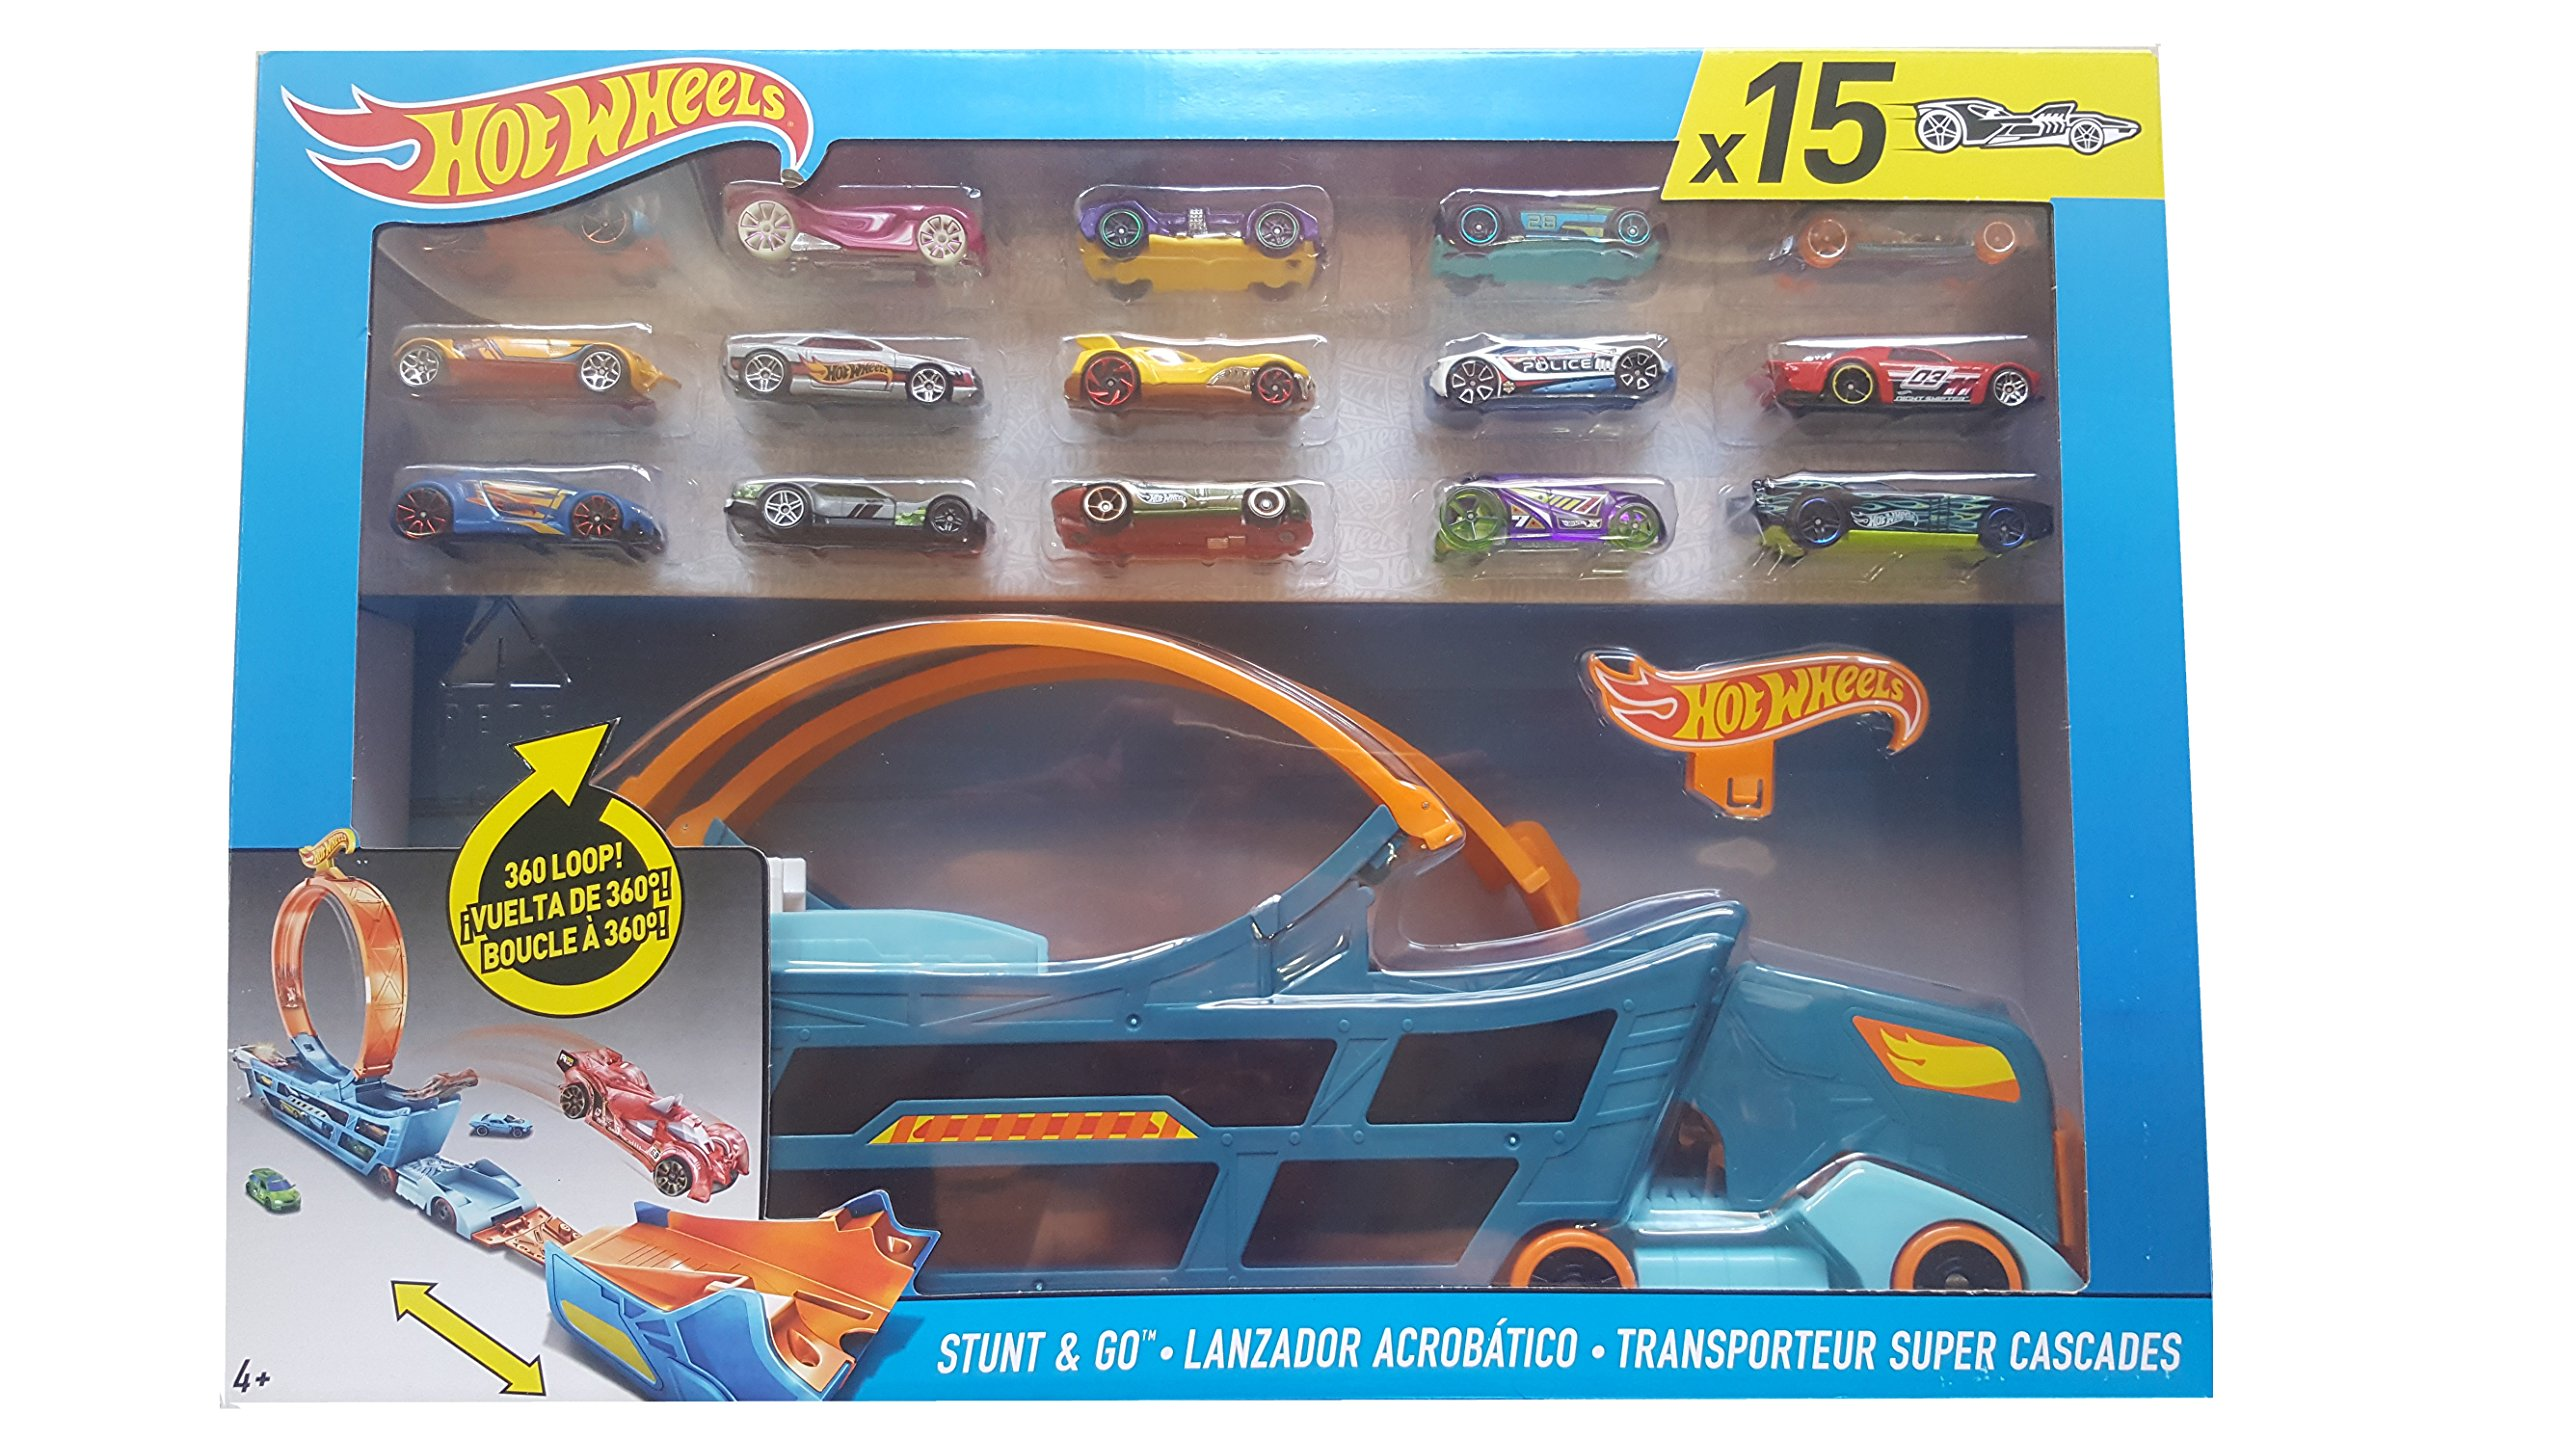 Hot Wheels Stunt & Go Track Set With 15 Cars